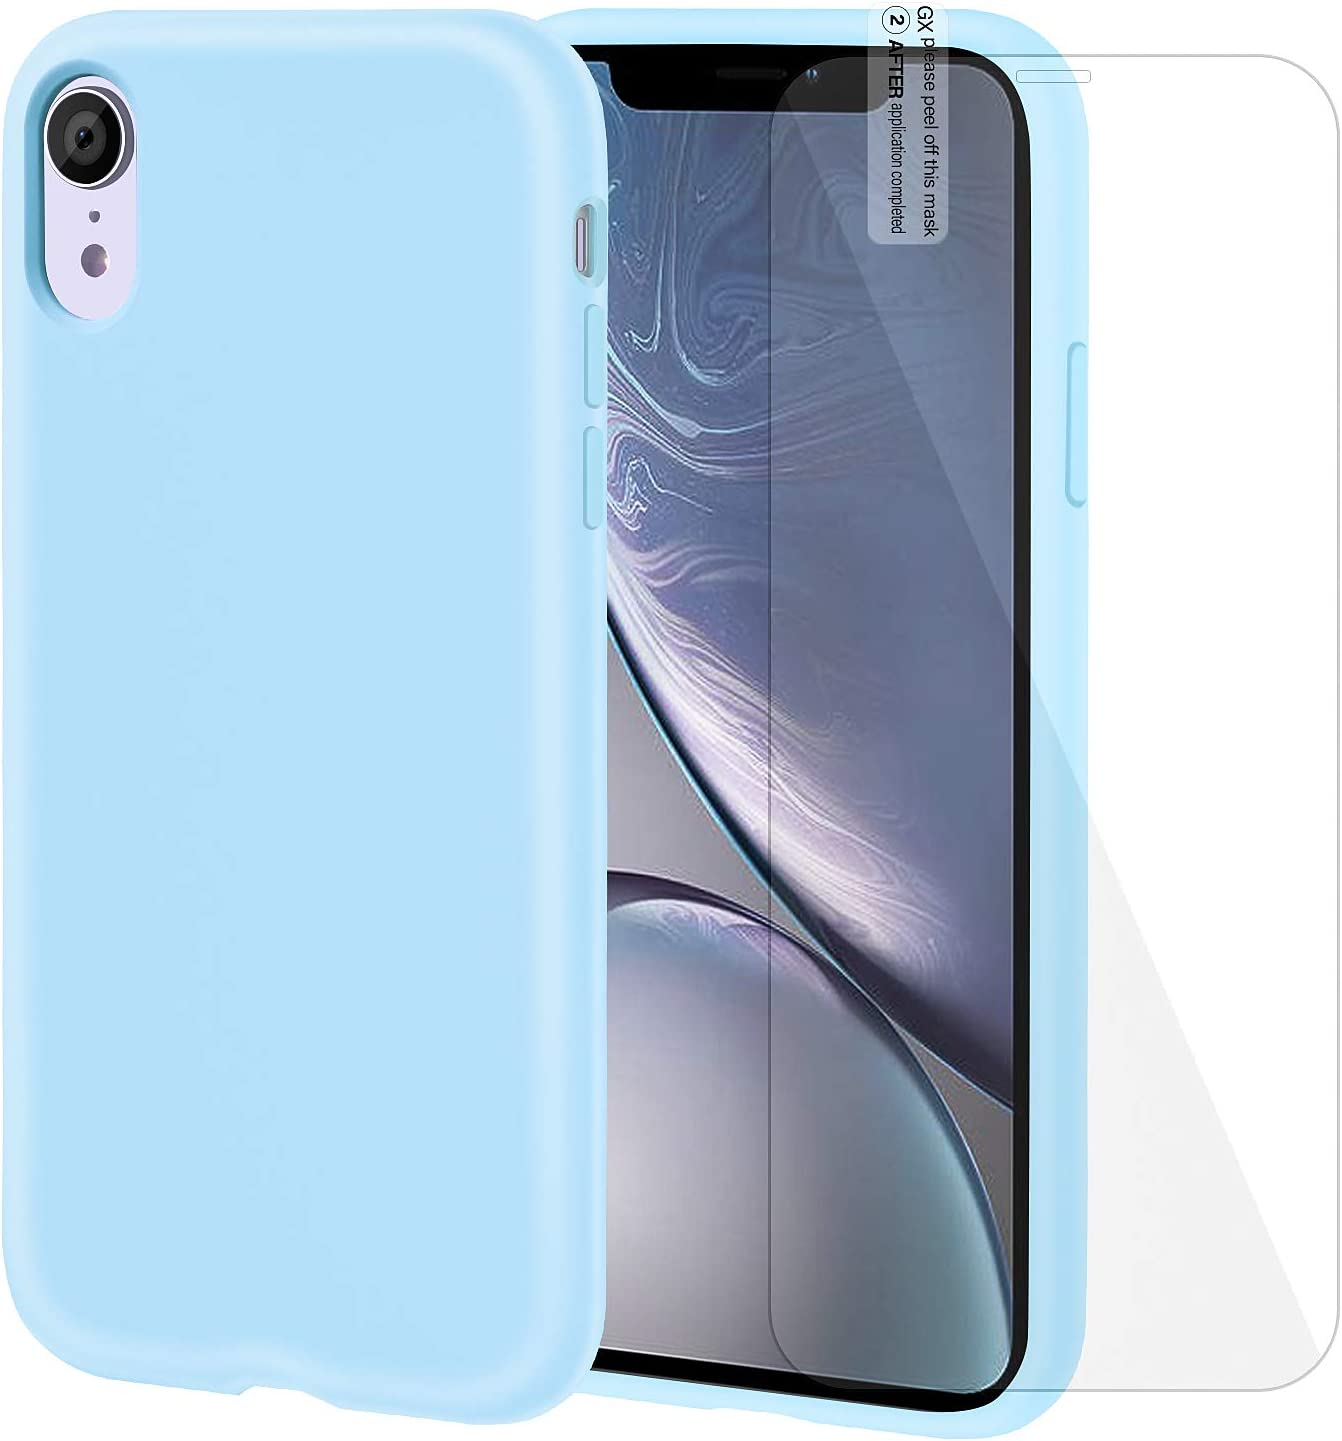 FulSoulComM iPhone XR Case Silicone Case with Screen Protector Anti-Slip Shockproof Anti-Scratch iPhone XR Protective Case for iPhone XR 6.1Inch (Light Blue)